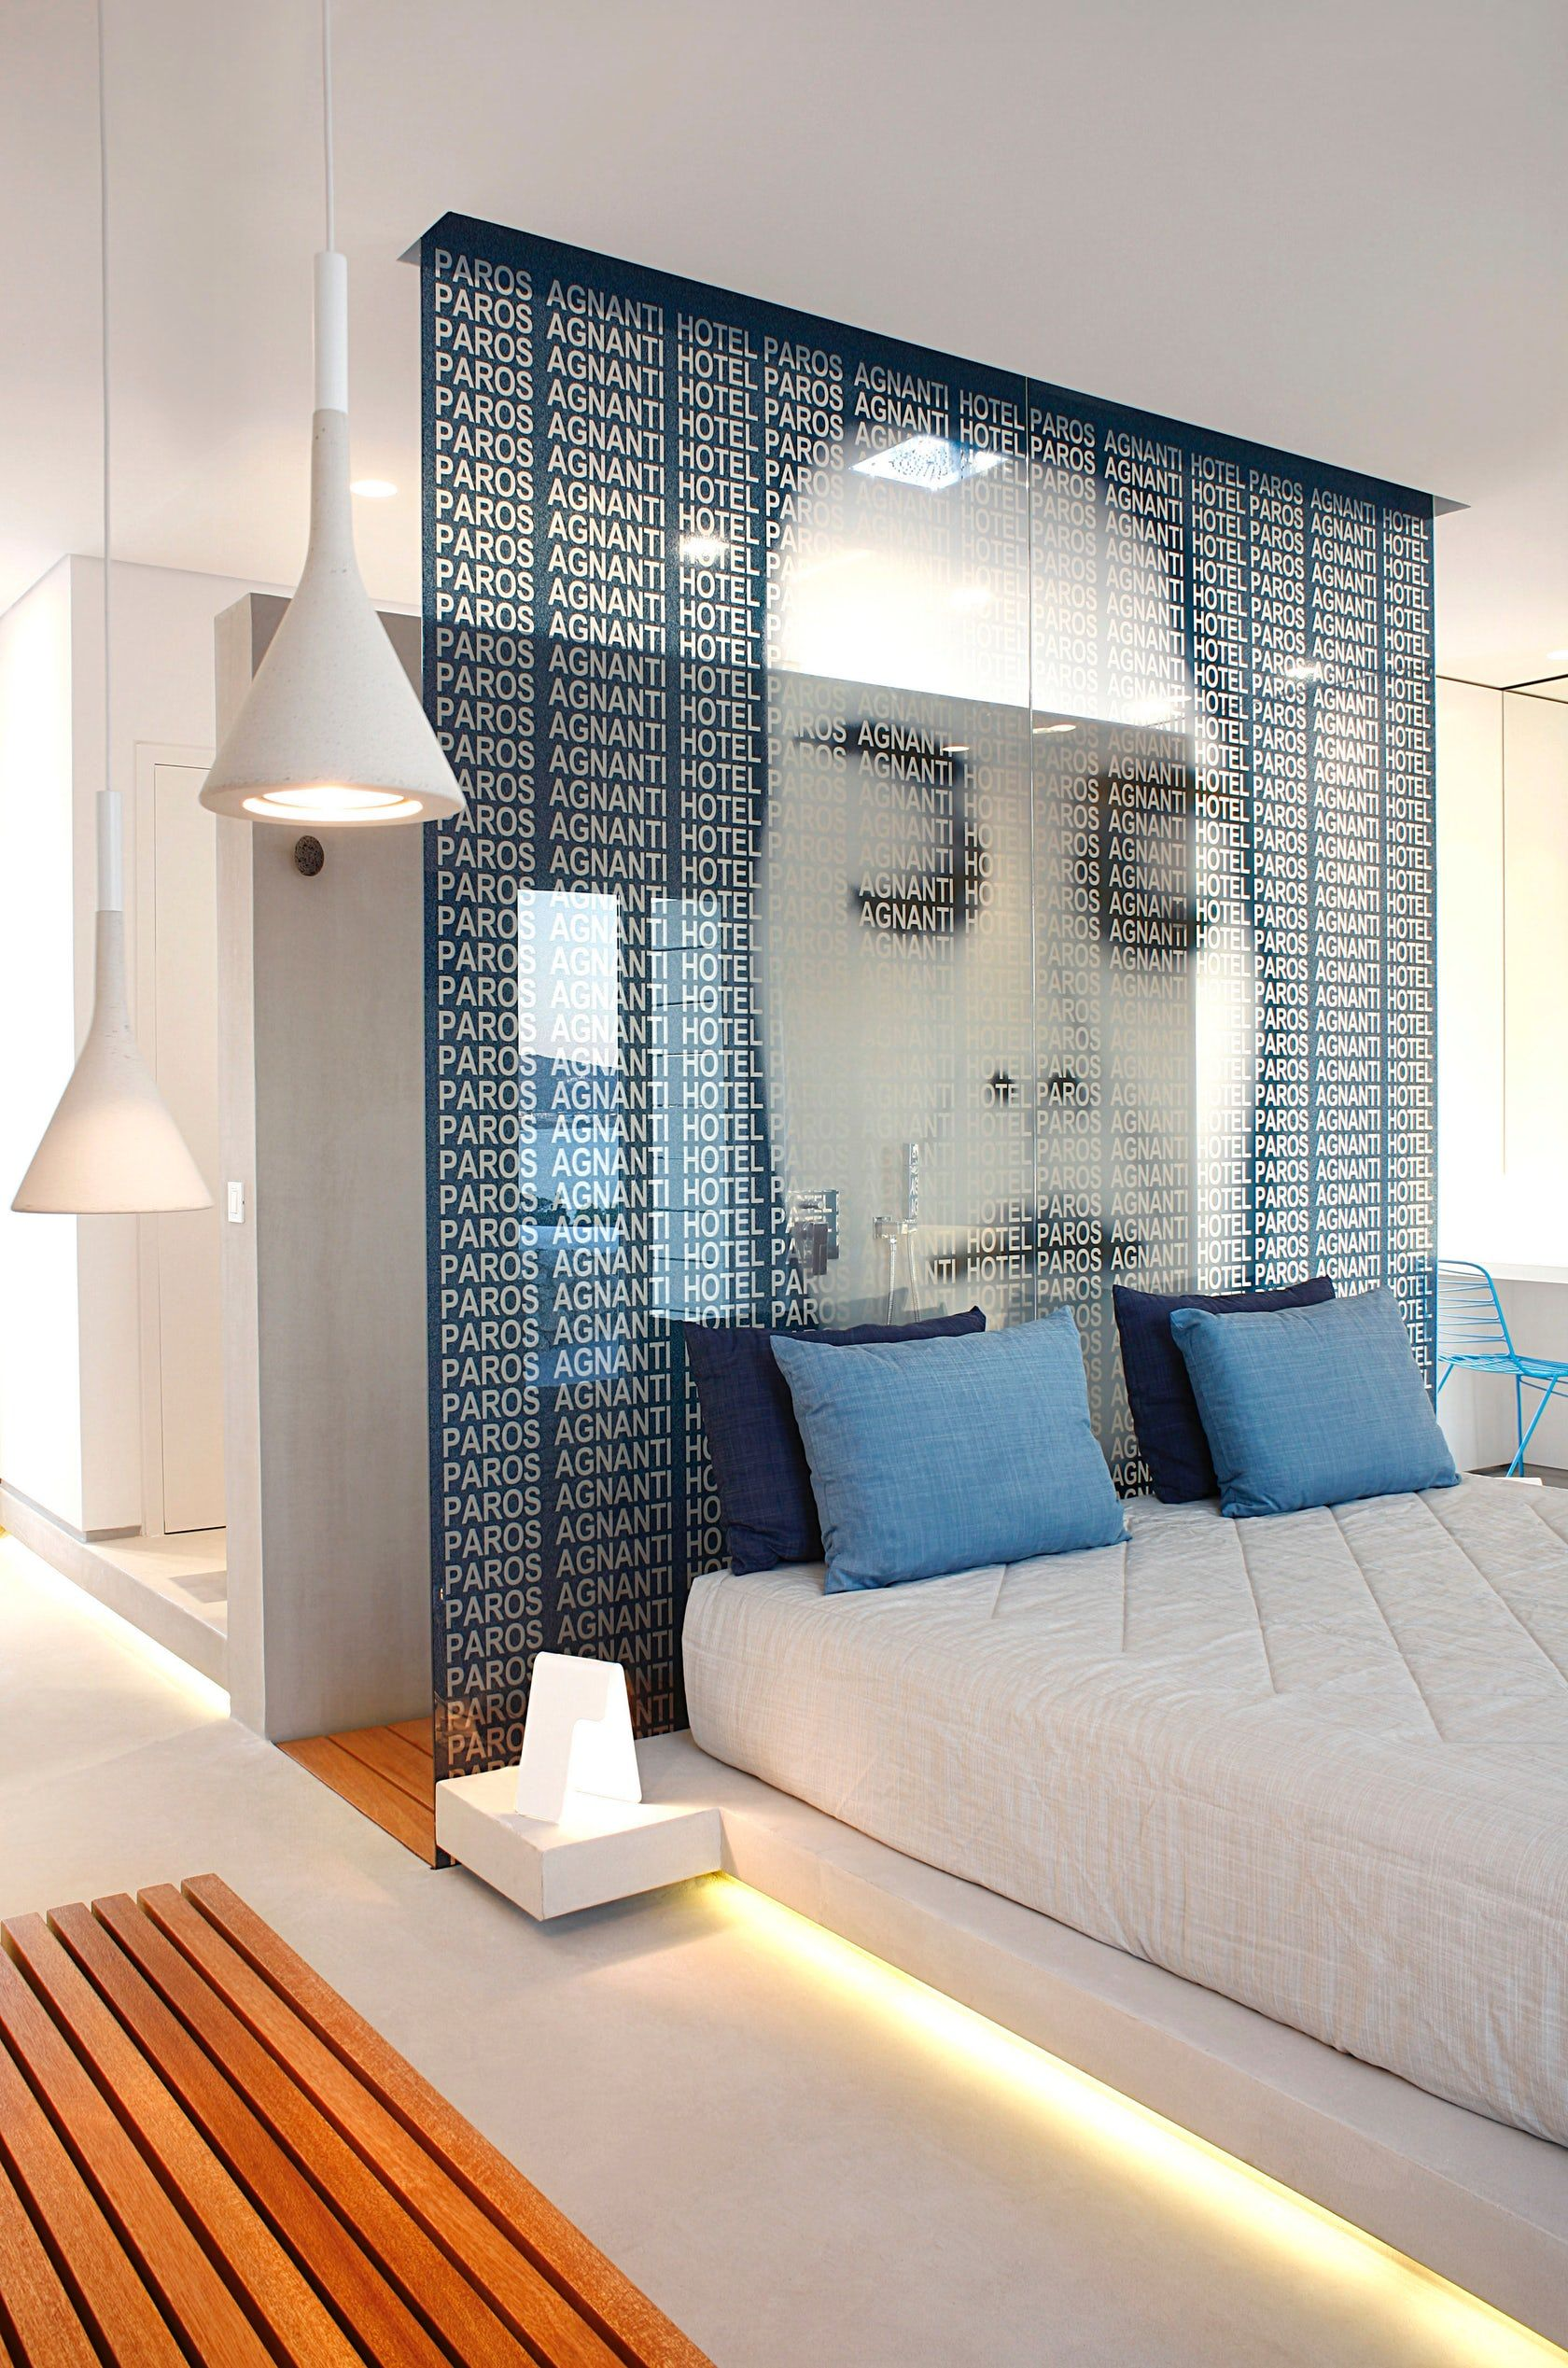 Minimalist Hotel Room: The Project Consists Of A 45m² Suite With Surrounding